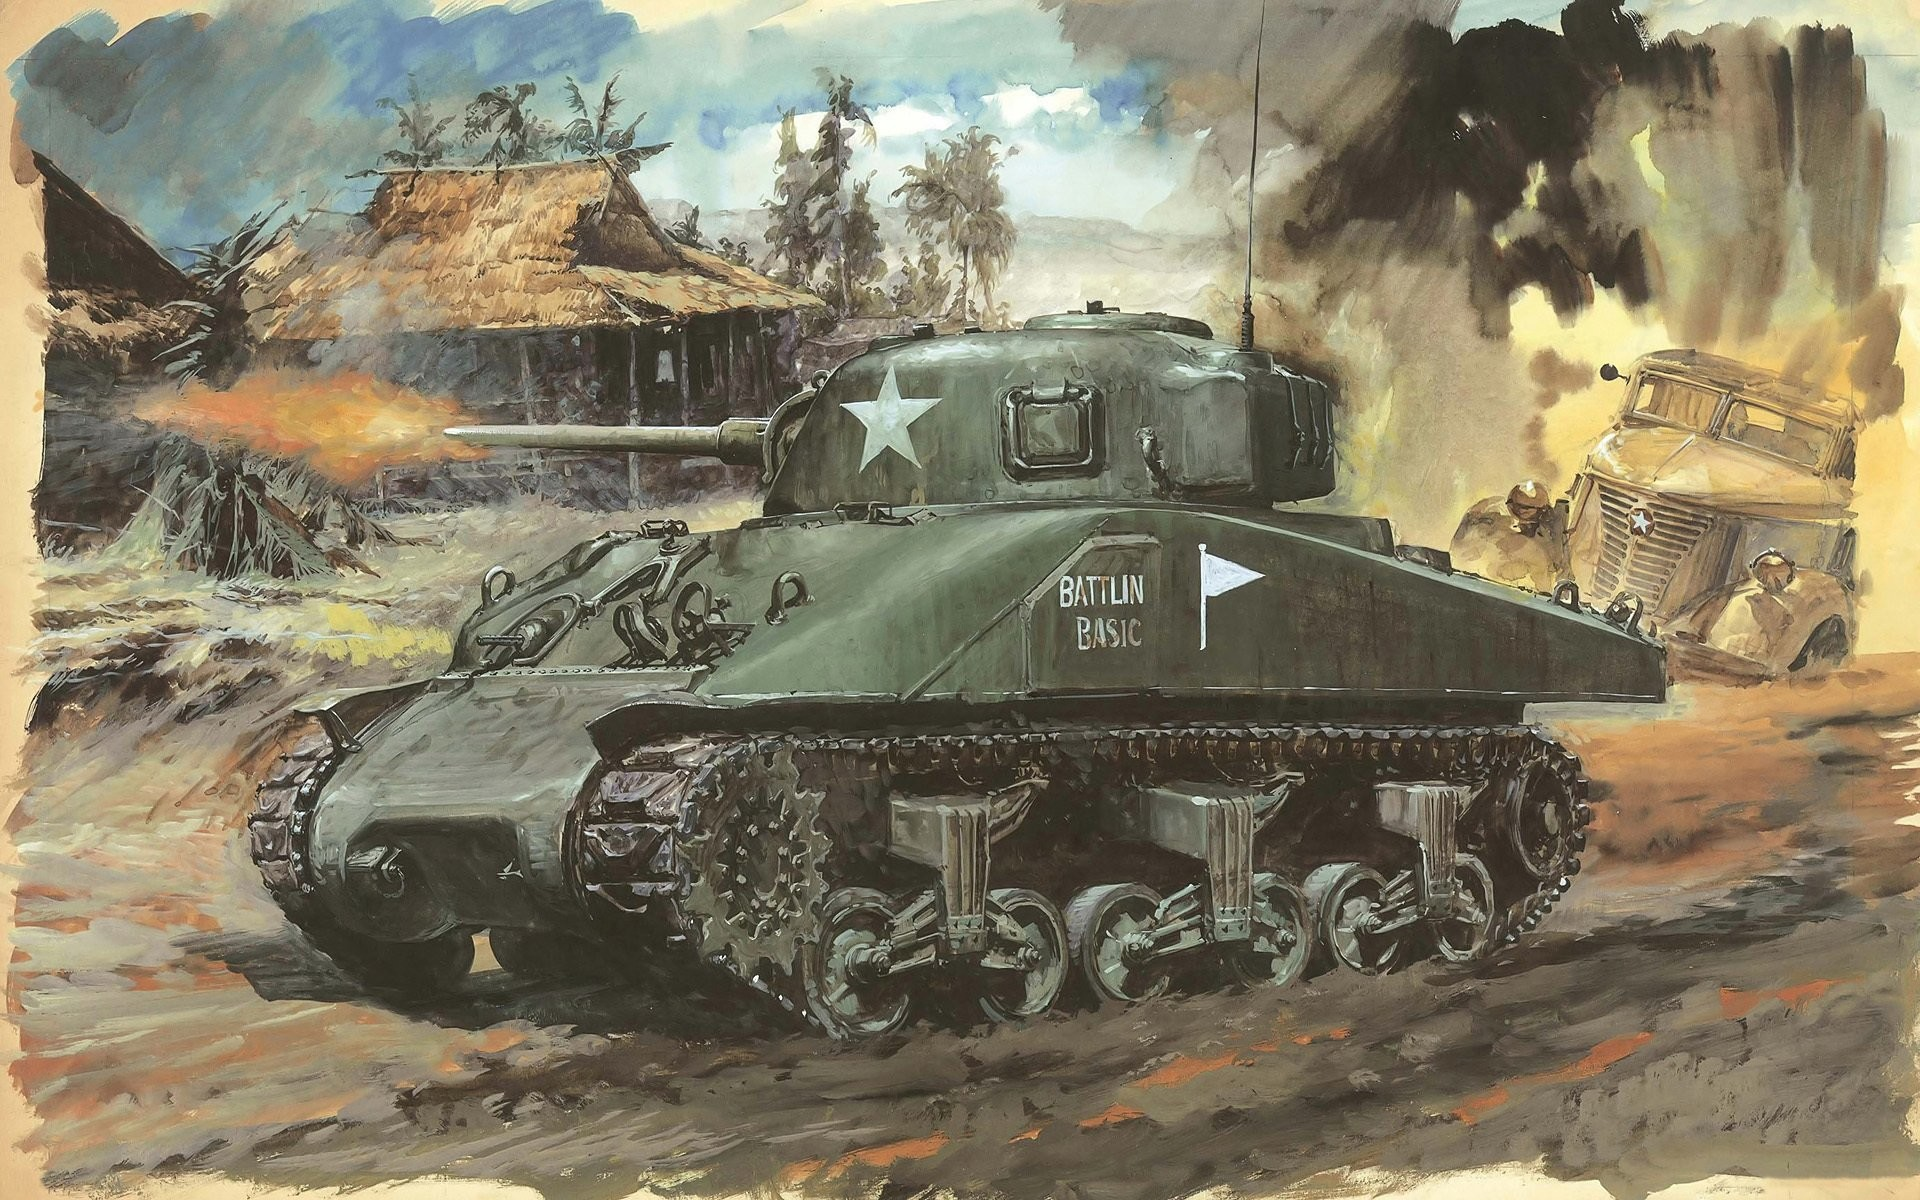 Res: 1920x1200, art picture strokes pencils tank sherman m4a1 main american medium is  widely was used to army